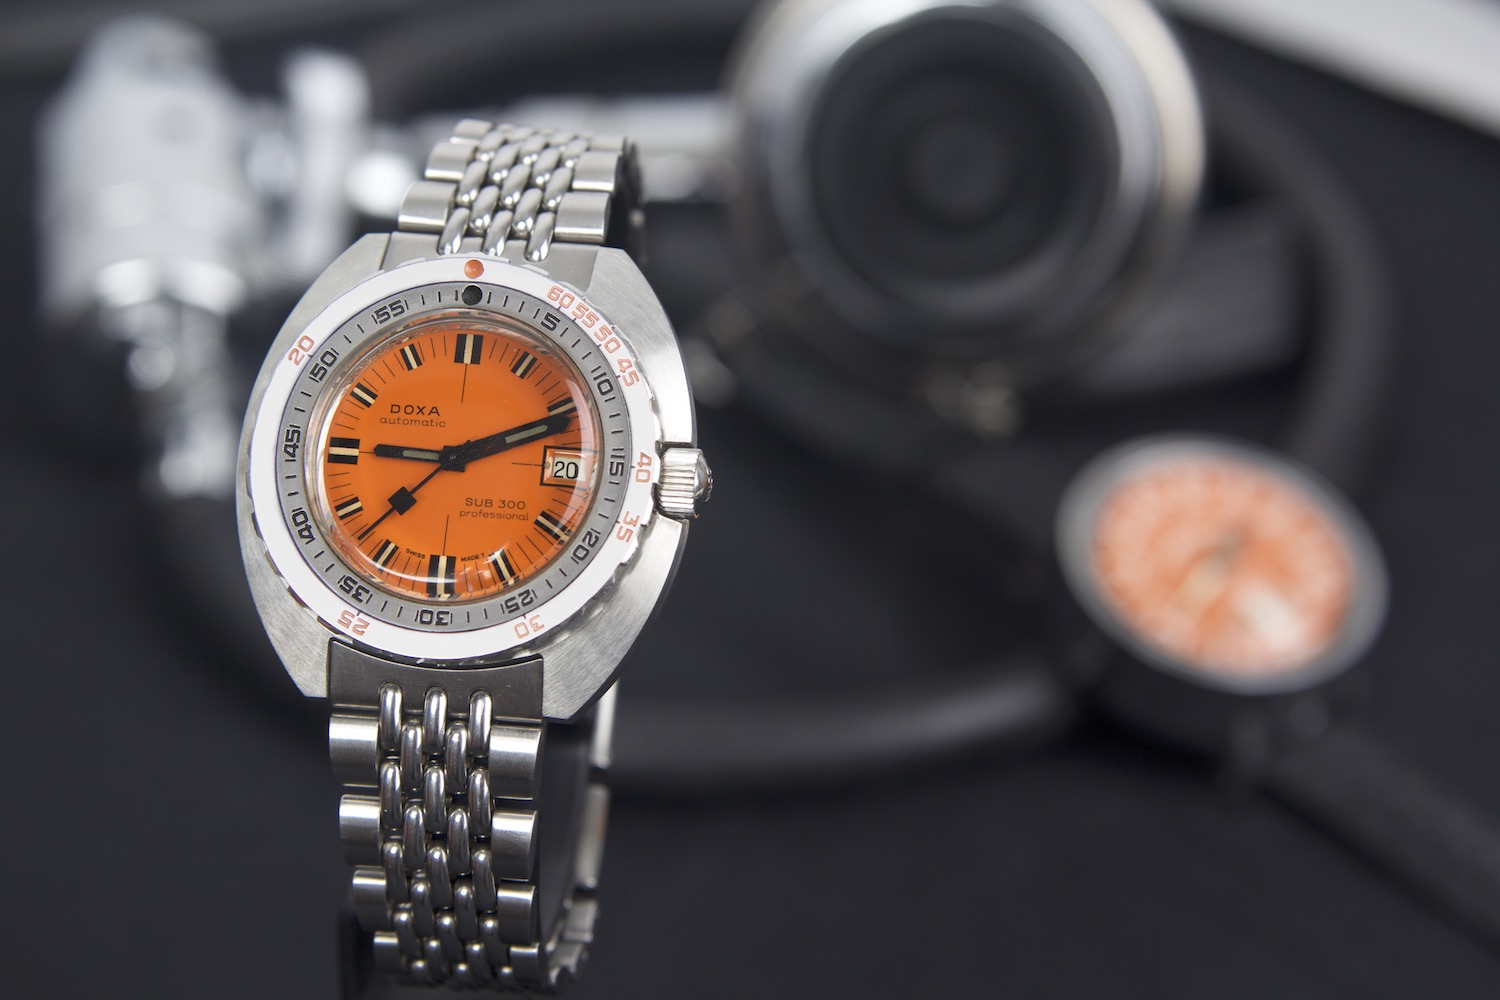 Doxa Sub 300 - historical perspective - vintage review